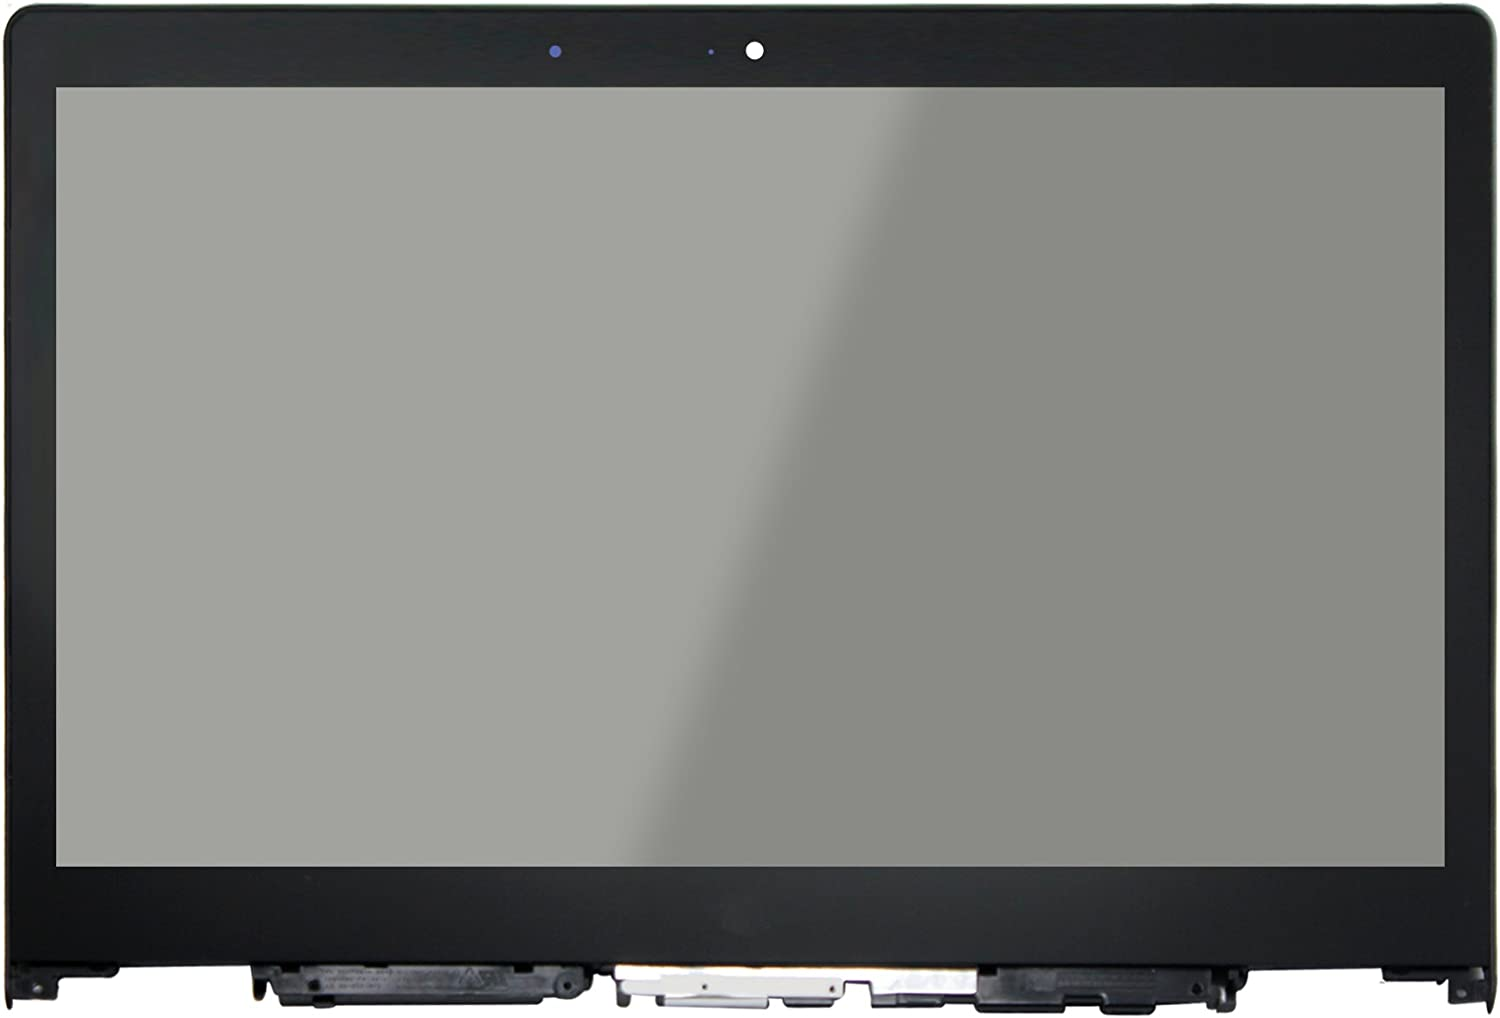 LCDOLED 14.0 inch for Lenovo Yoga 700 700-14ISK 80QD 80QD00DRUS 80QD003YUS FullHD 1080P LP140WF3-SPL2 LED LCD Display Touch Screen Digitizer Assembly + Bezel